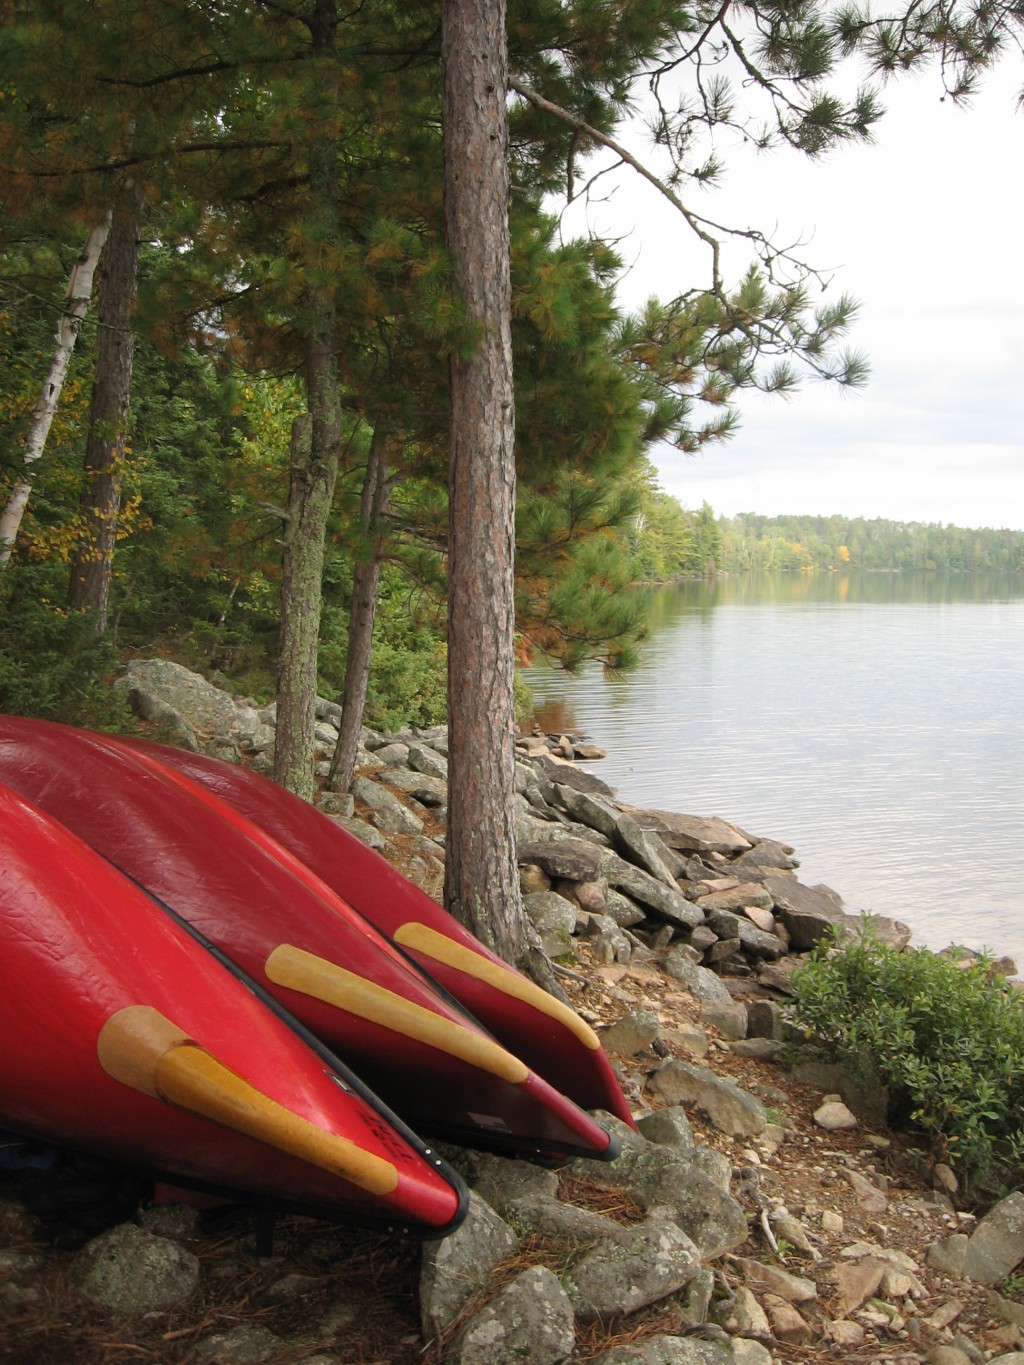 This Sept. 16, 2017 photo shows canoes pulled out of the water for the night at a campsite on Parent Lake in Minnesota's Boundary Waters Canoe Area Wi...